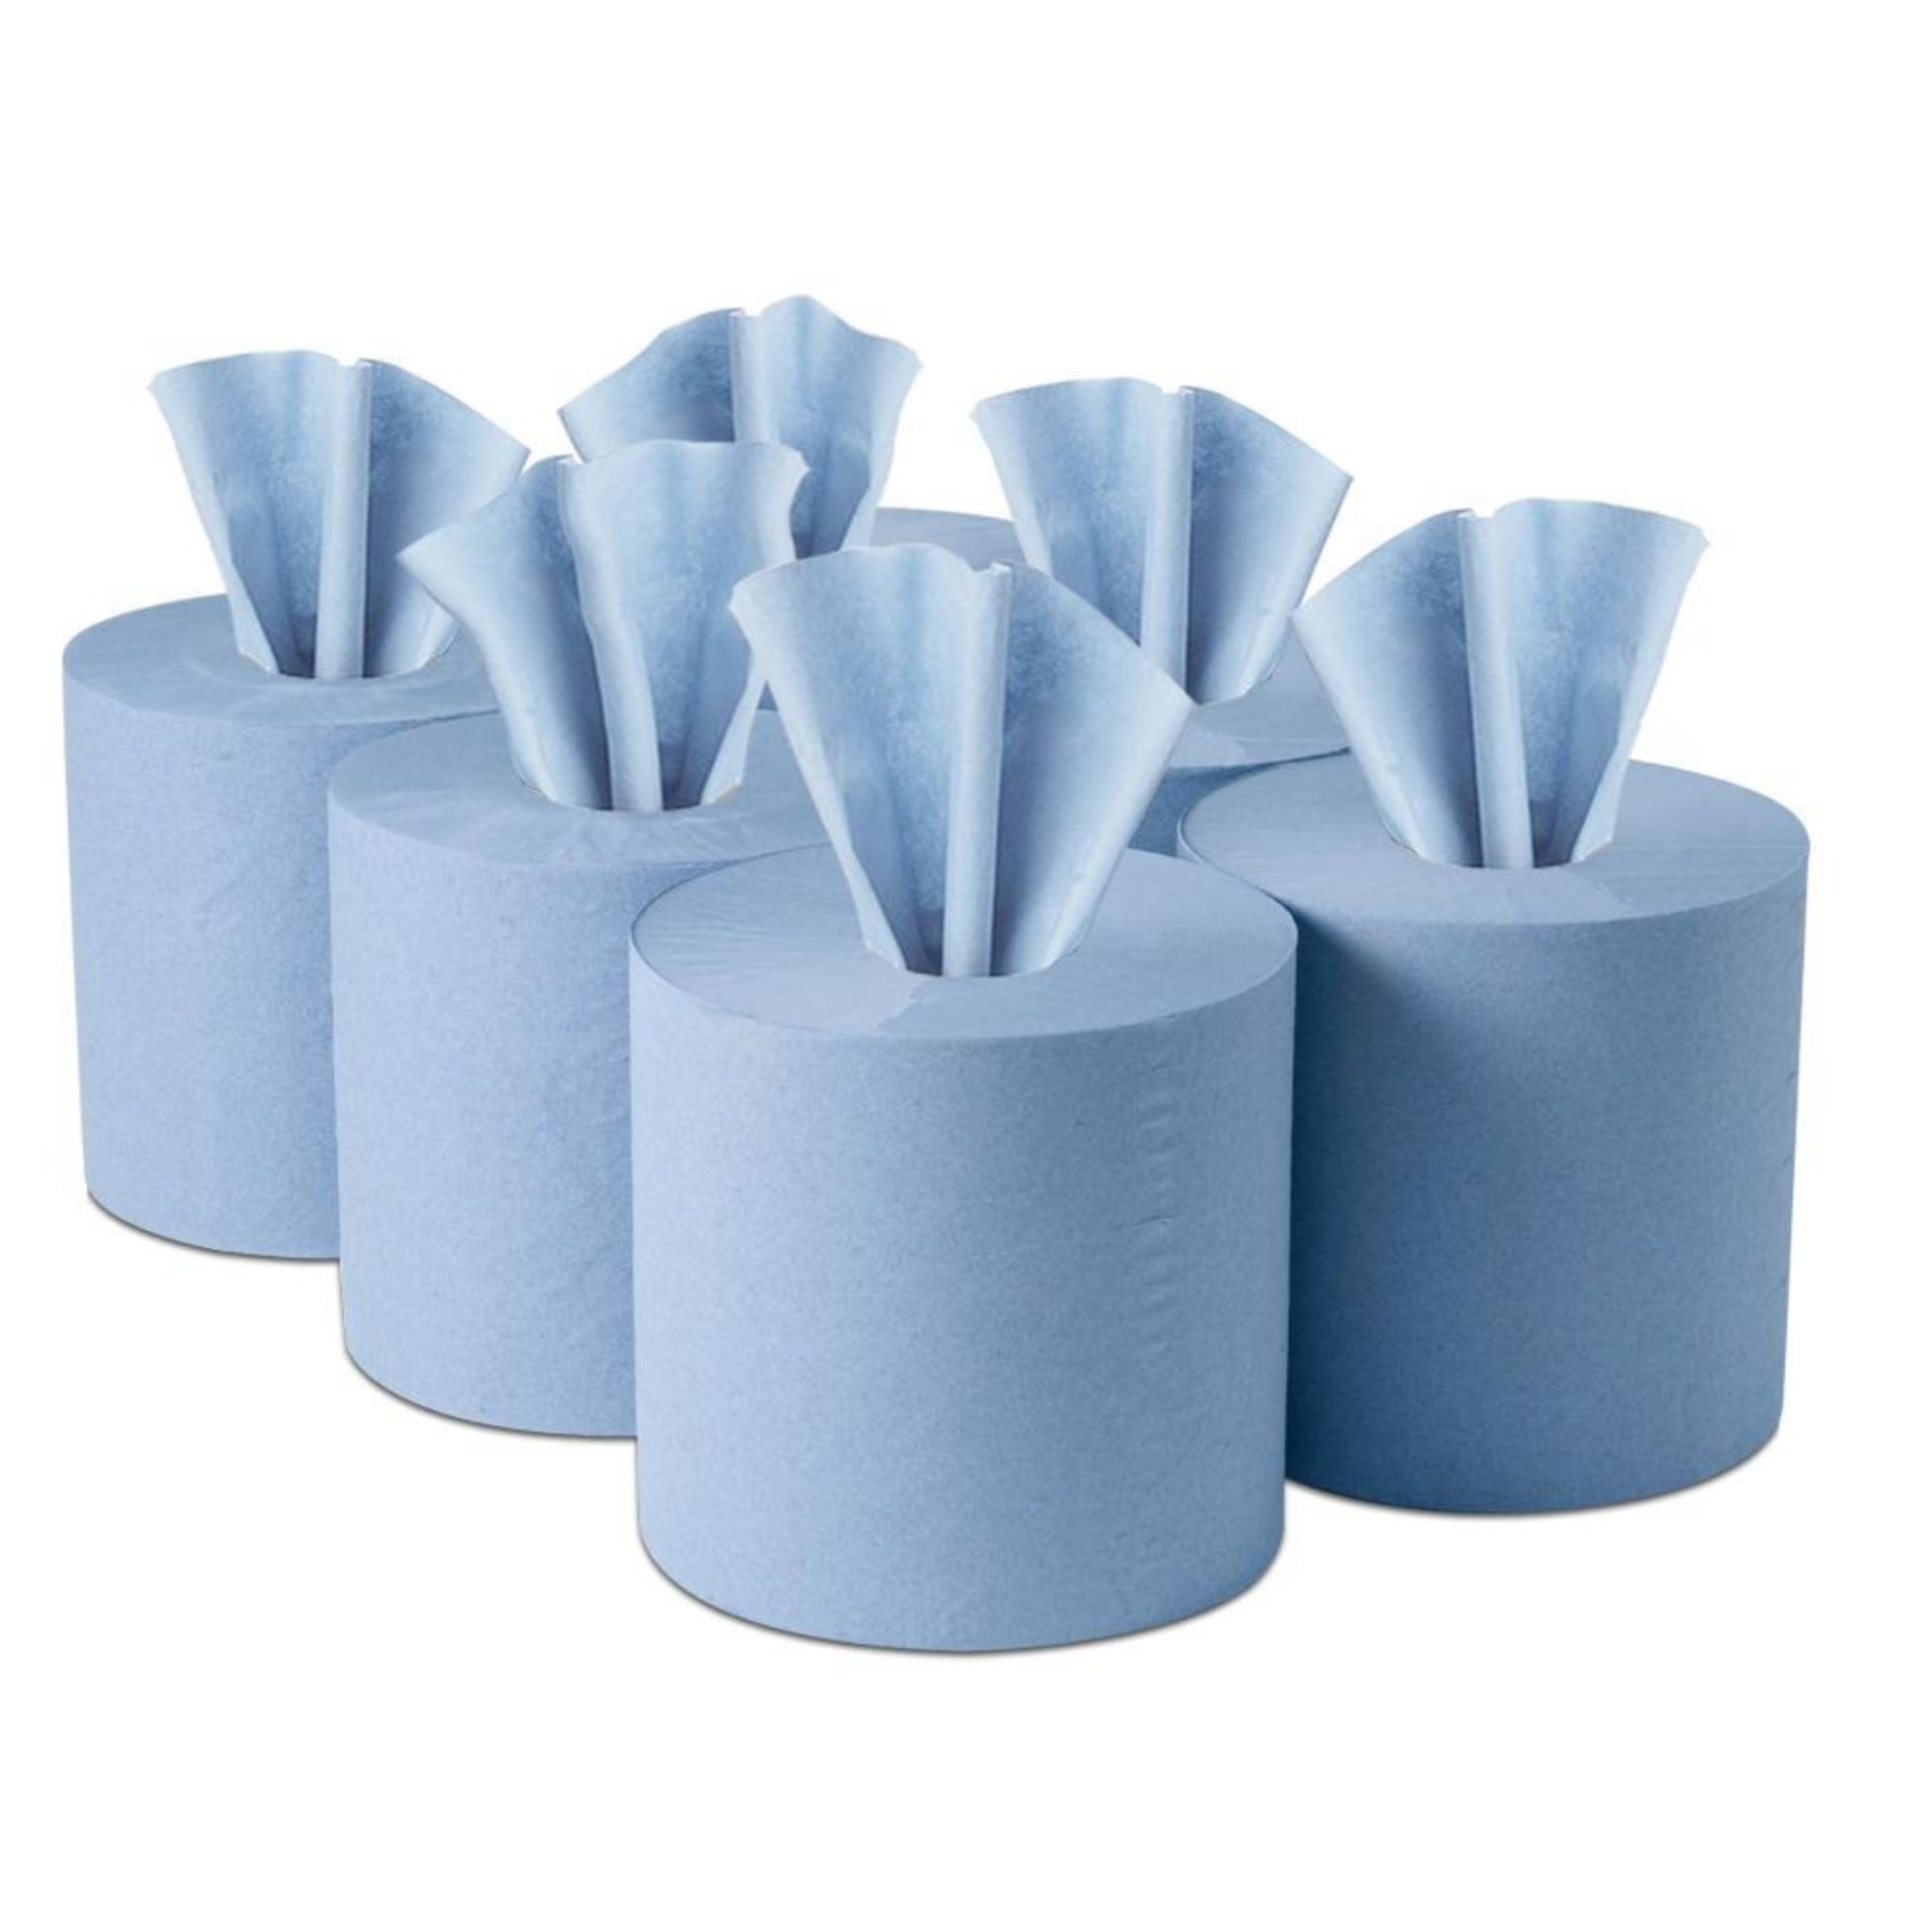 Blue Centrefeed Rolls 1x6